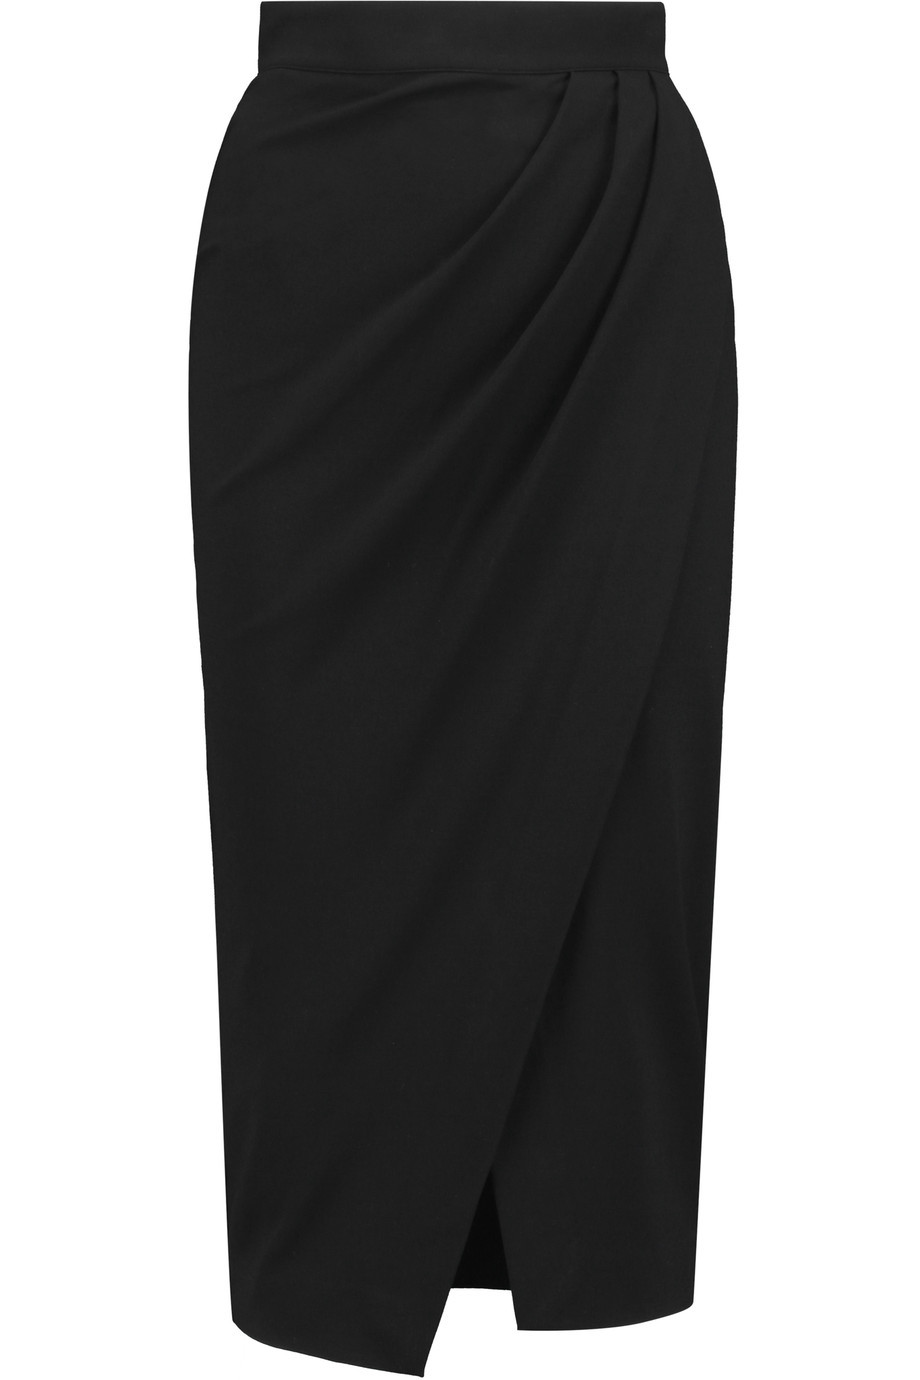 Amber Wrap Effect Ponte Jersey Skirt Black - length: below the knee; pattern: plain; style: pencil; fit: body skimming; waist: mid/regular rise; predominant colour: black; occasions: evening, creative work; fibres: viscose/rayon - stretch; pattern type: fabric; texture group: jersey - stretchy/drapey; season: s/s 2016